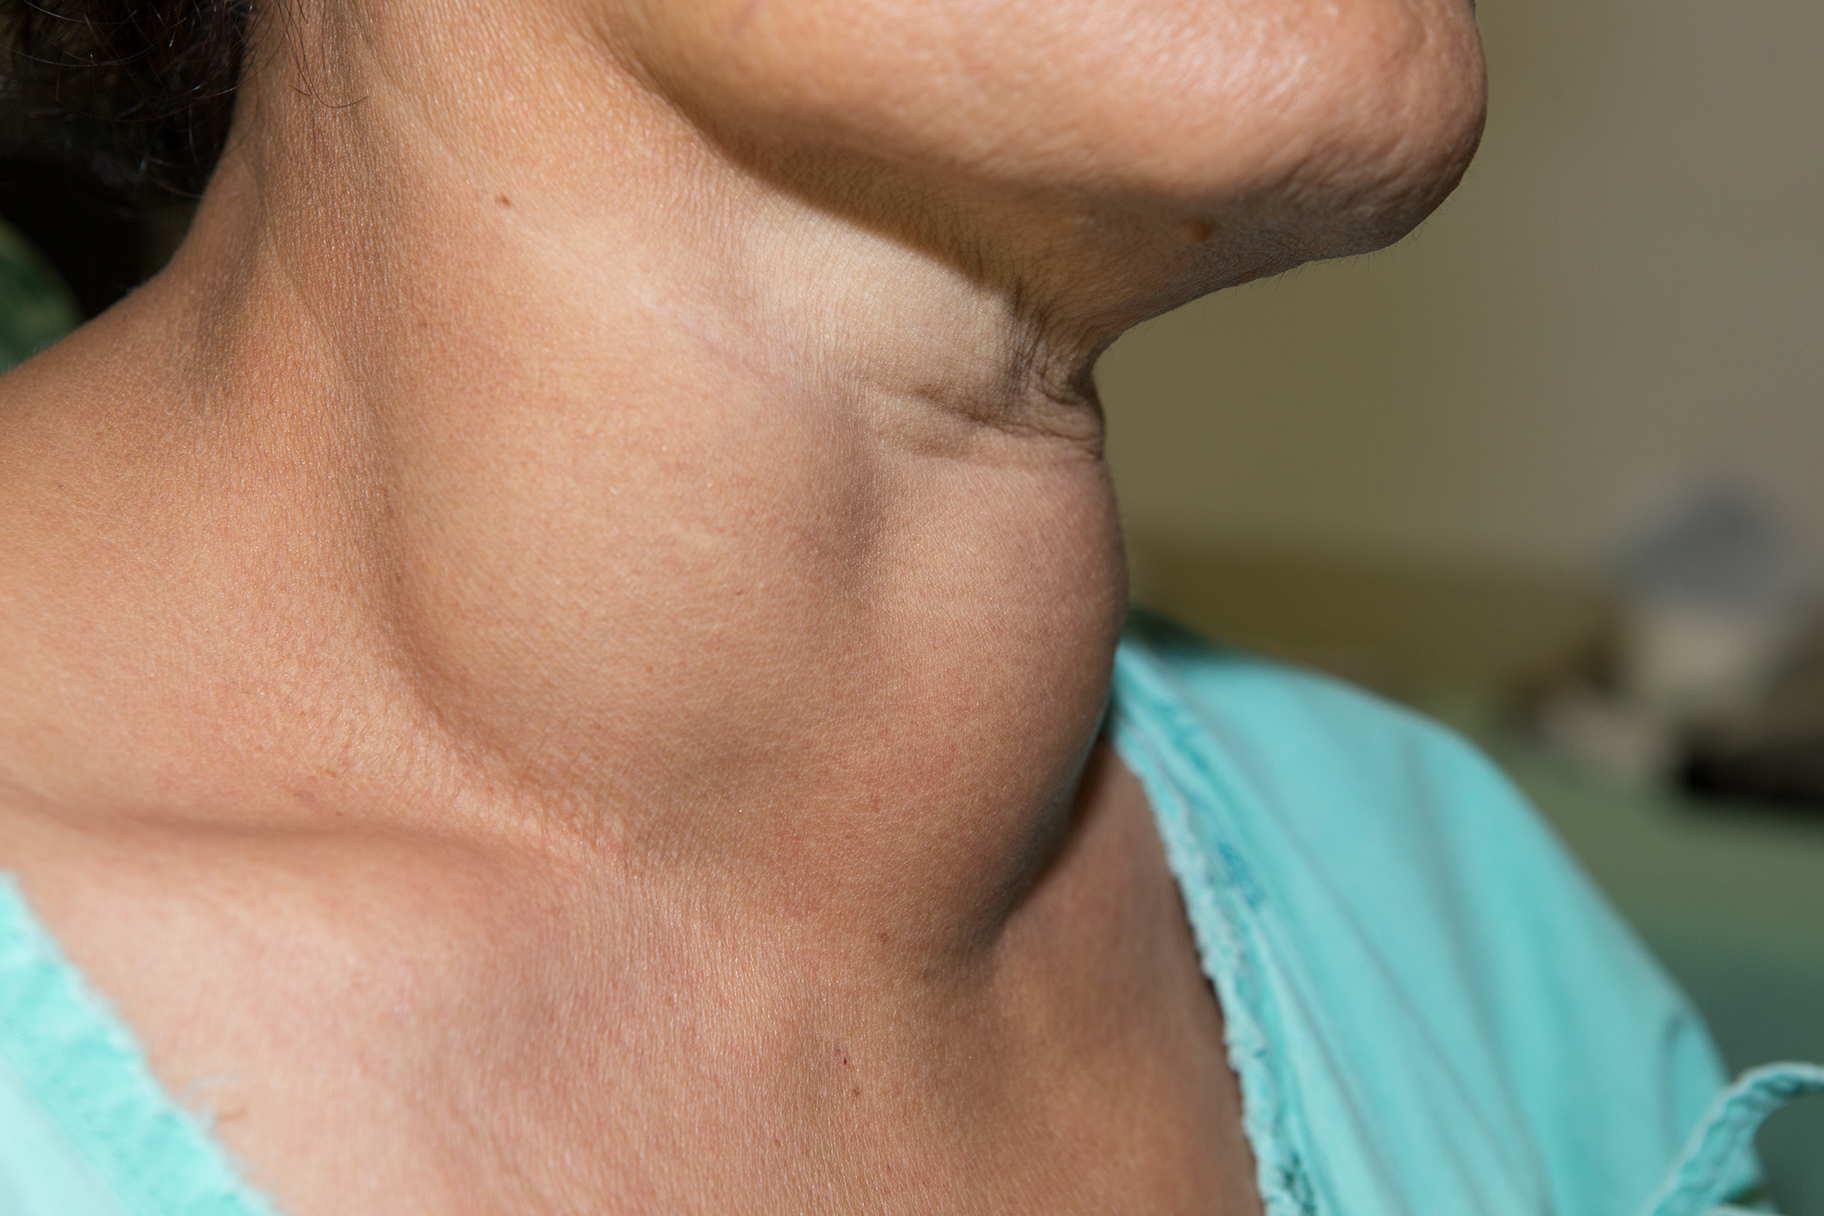 Goitrogenic foods to limit in Hypothyroidism